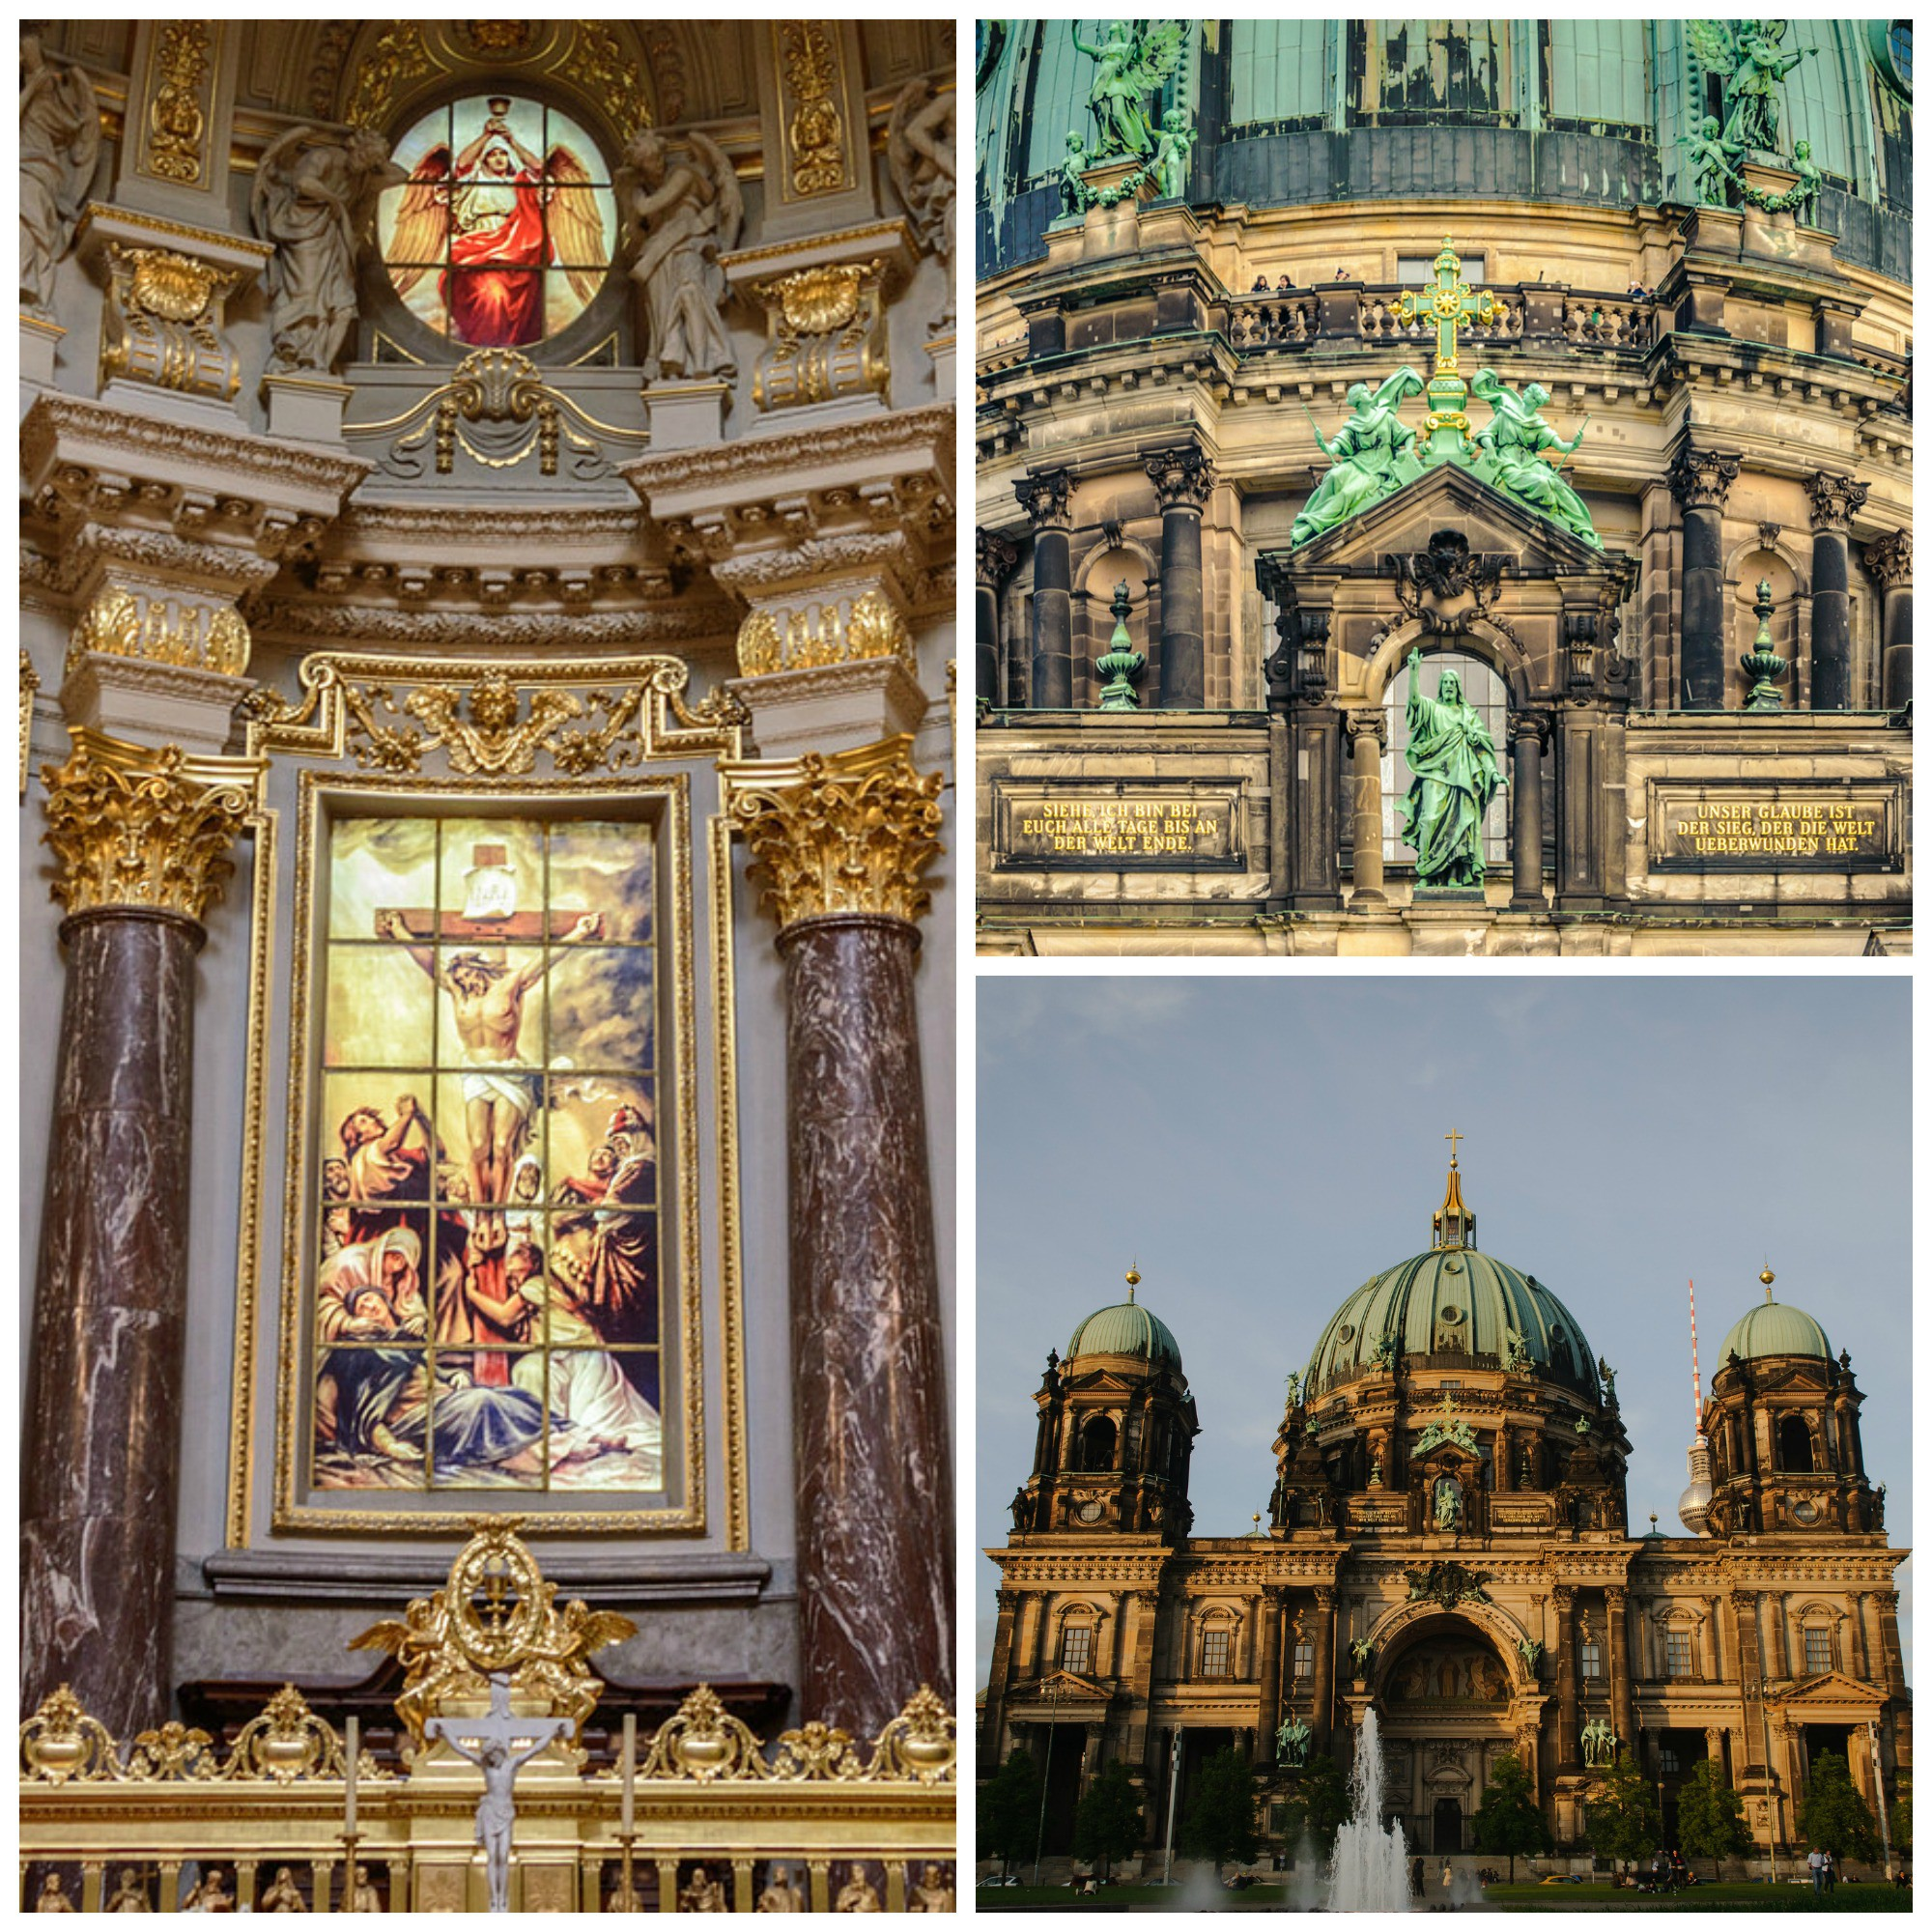 The History Of The Berliner Dom In 1 Minute